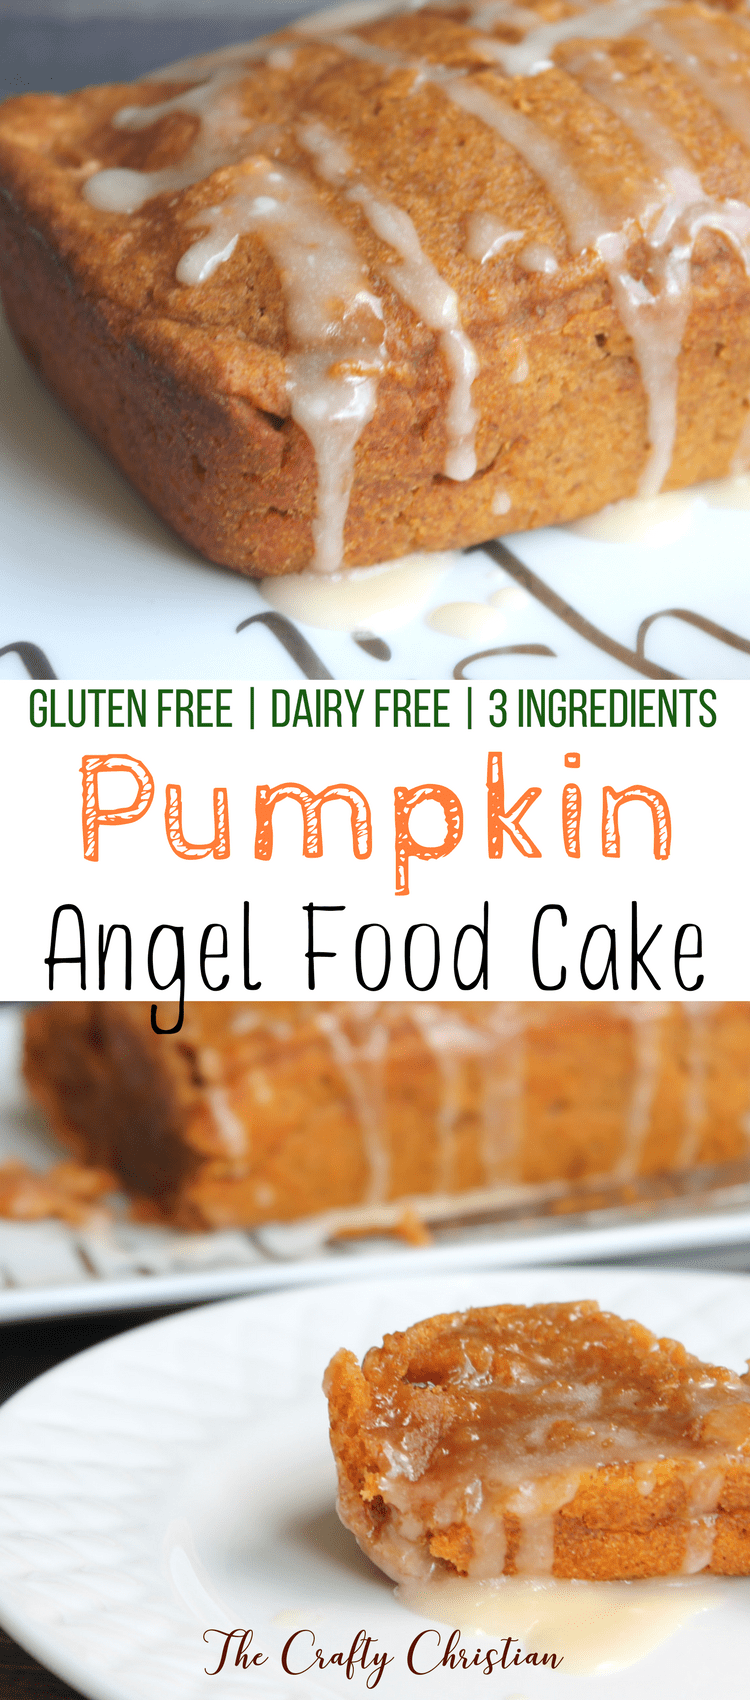 Fall is my favorite time of year, and all of the treats that come with it. This gluten free pumpkin angel food cake is easy and incredibly delicious!